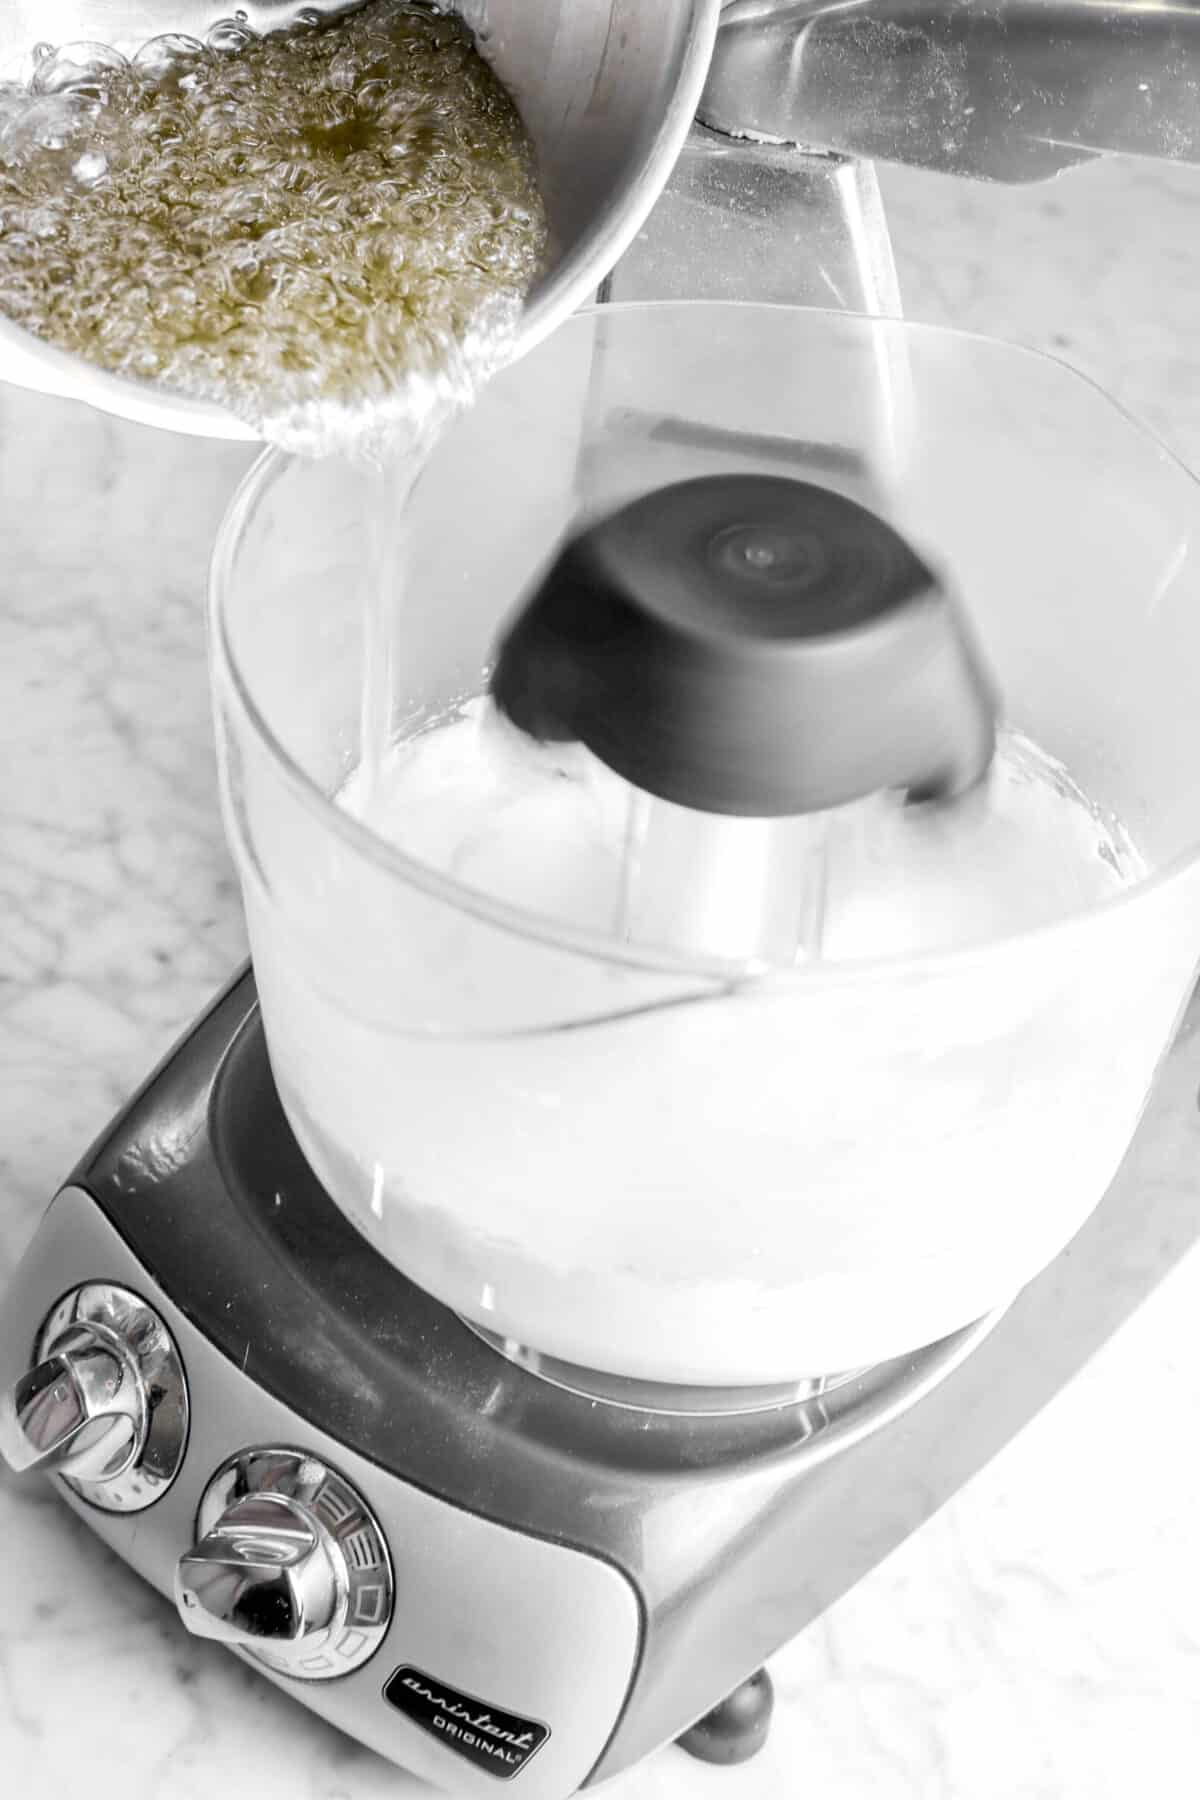 melted sugar being poured into mixer